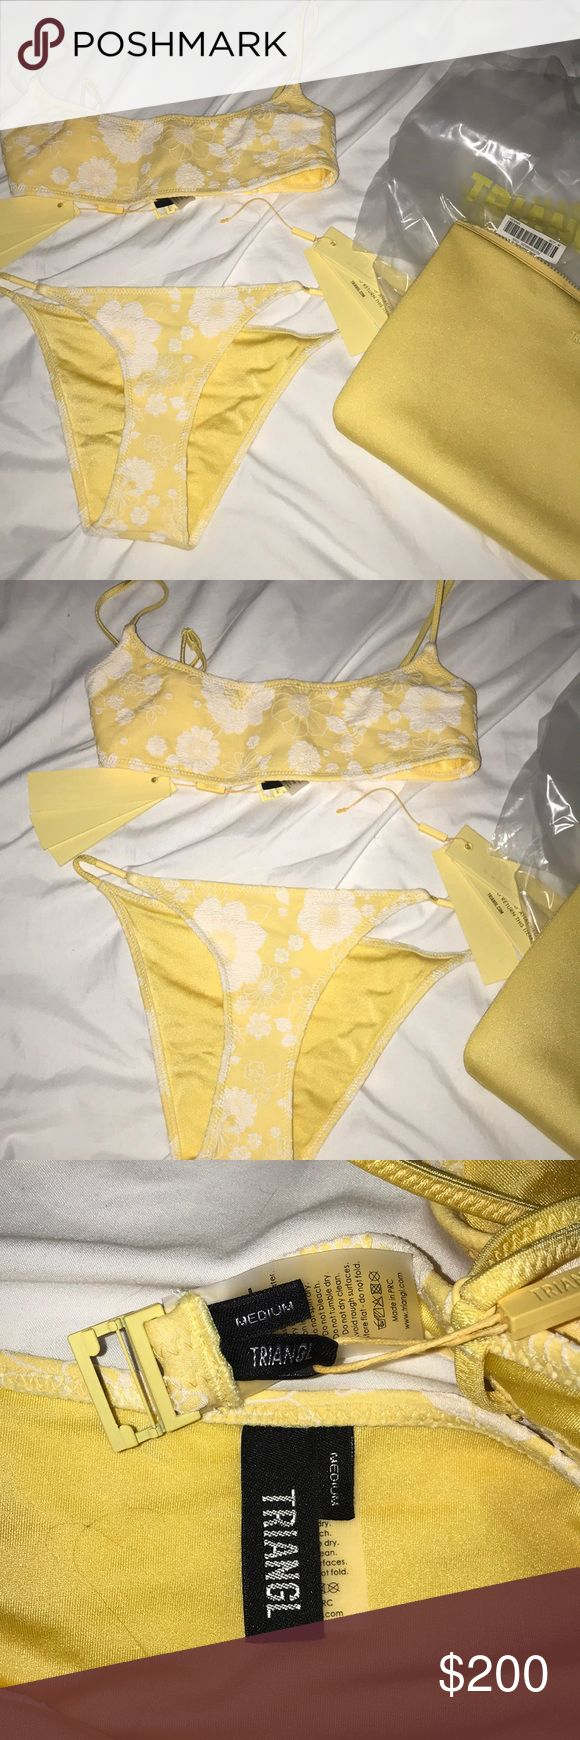 Triangl Gemma (NOT SURE ON SELLING) NWT. I adore it! But not the biggest fan of the bottoms. The color and pattern are to die for! I have an olive tan skin tone and it looks amazing! Still not sure on selling but interested in trades! Both mediums! triangl swimwear Swim Bikinis